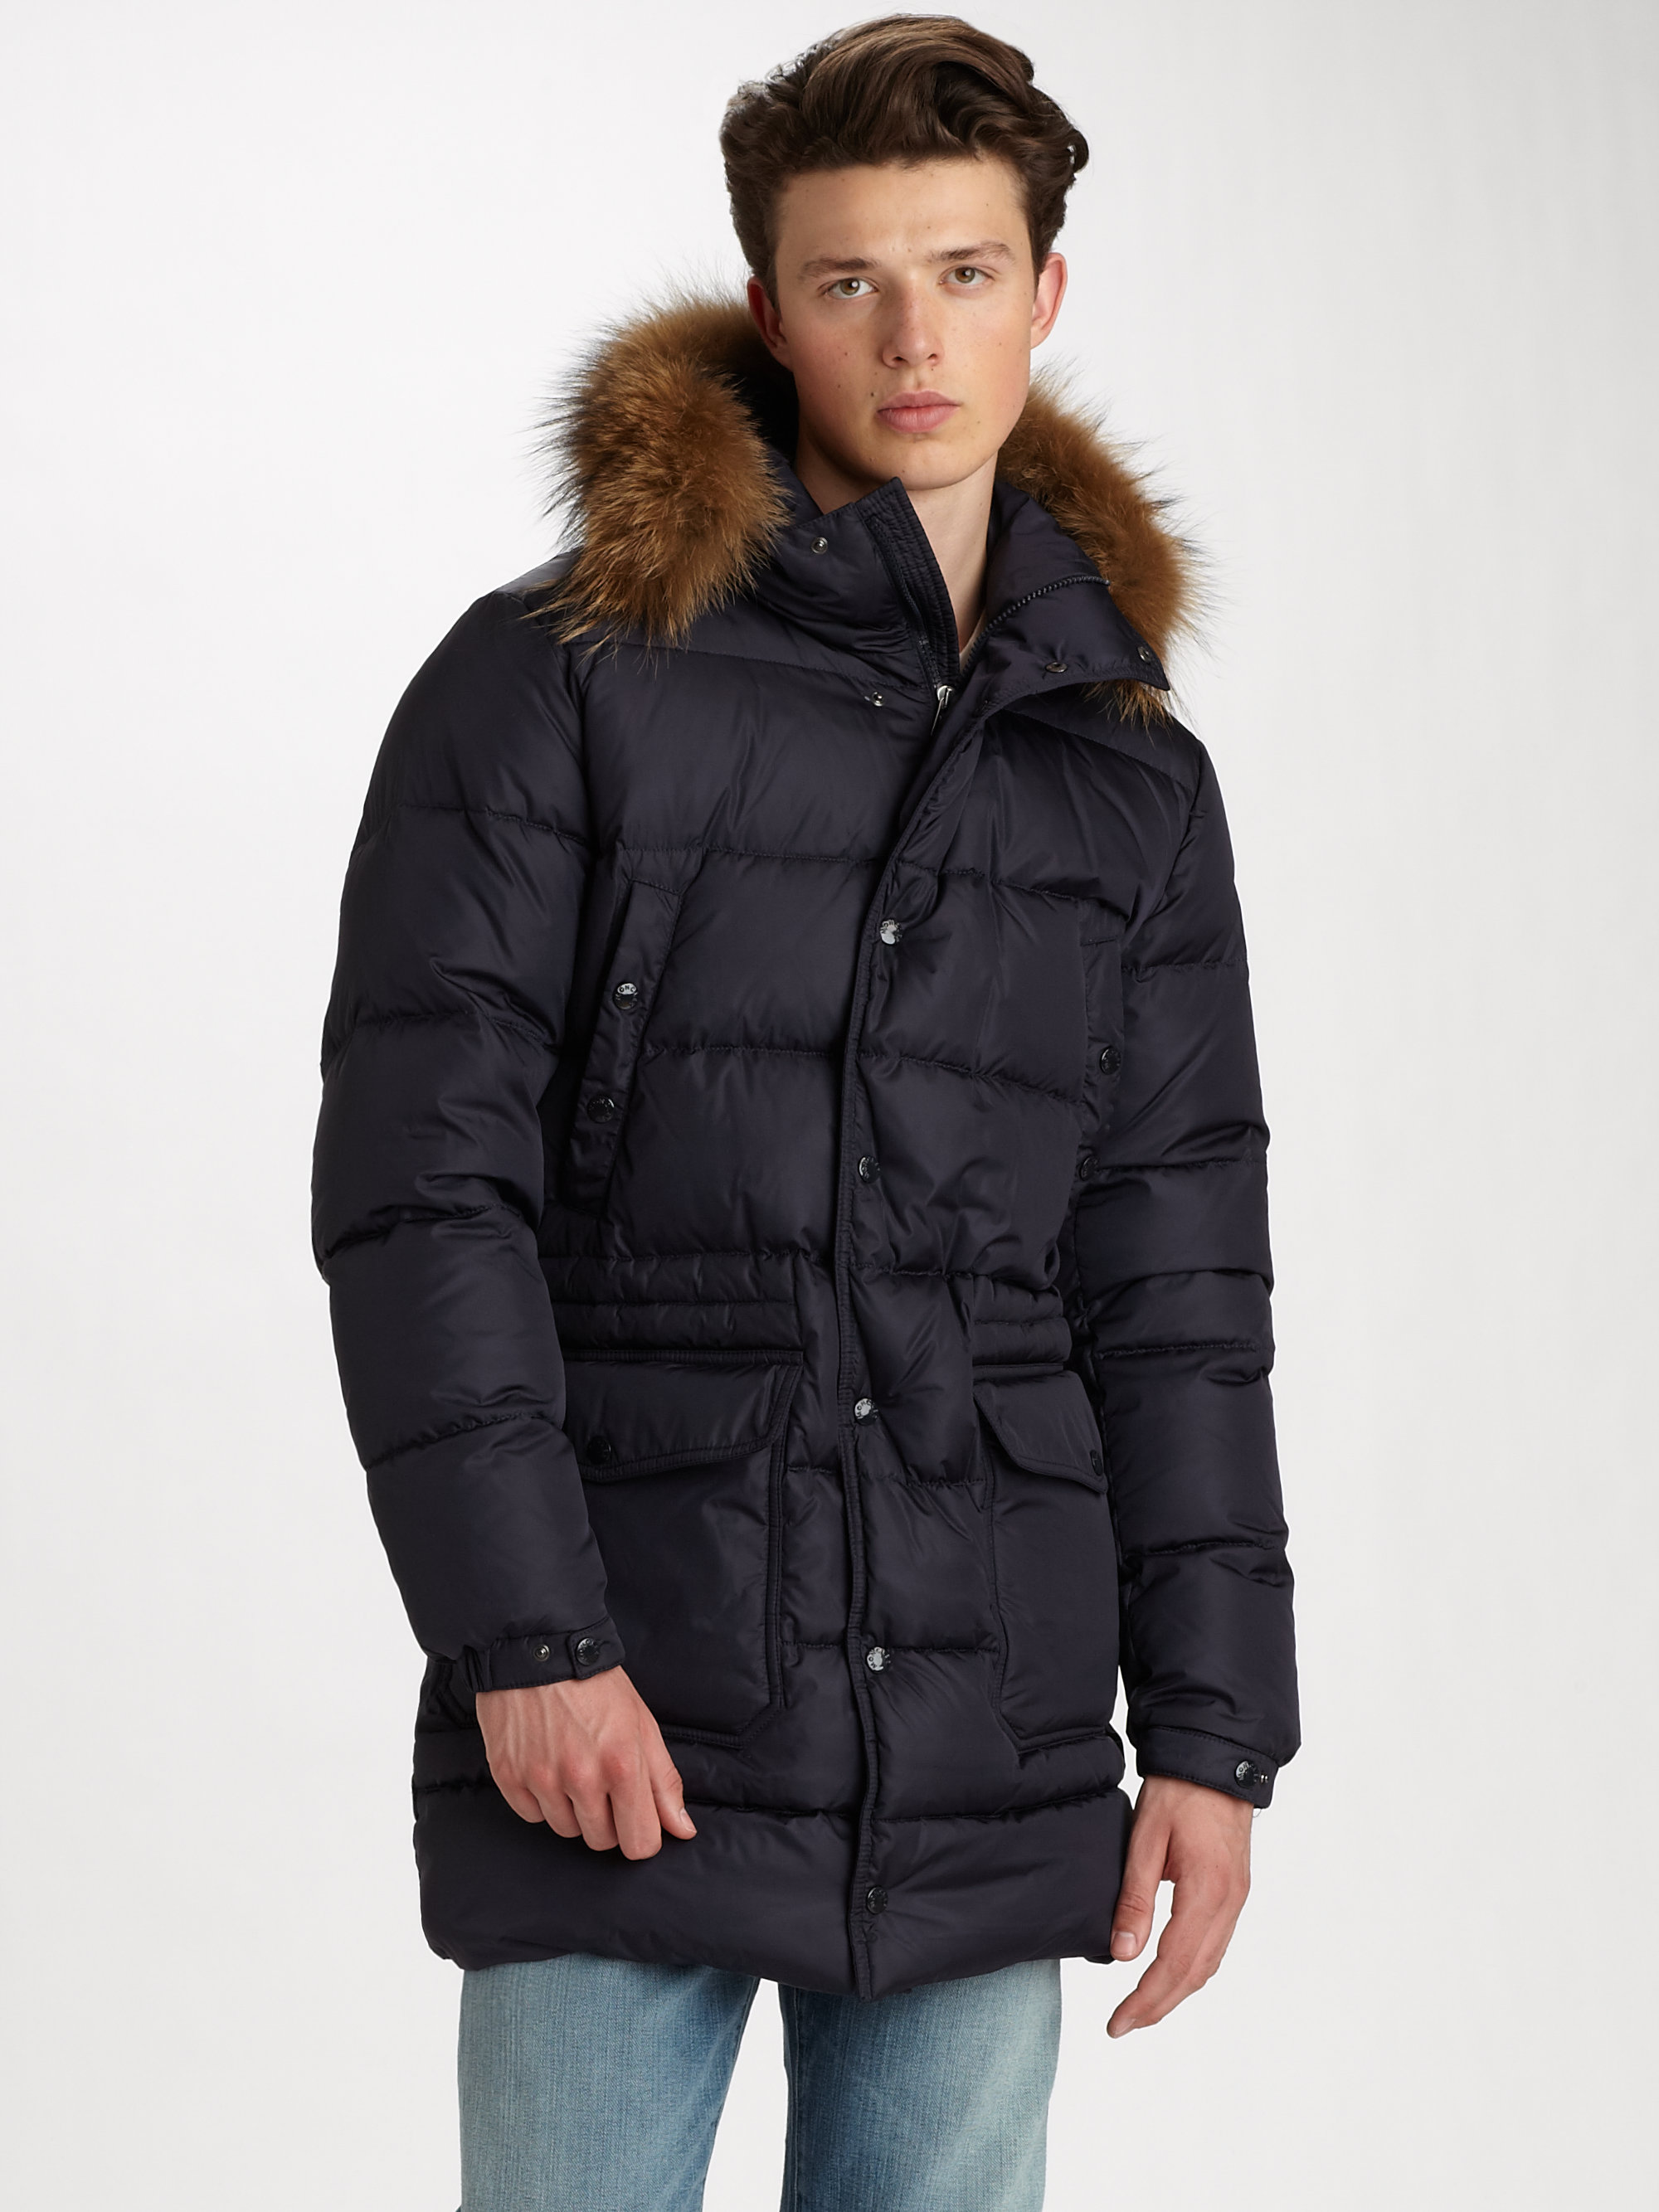 moncler senega down parka in black for men lyst. Black Bedroom Furniture Sets. Home Design Ideas